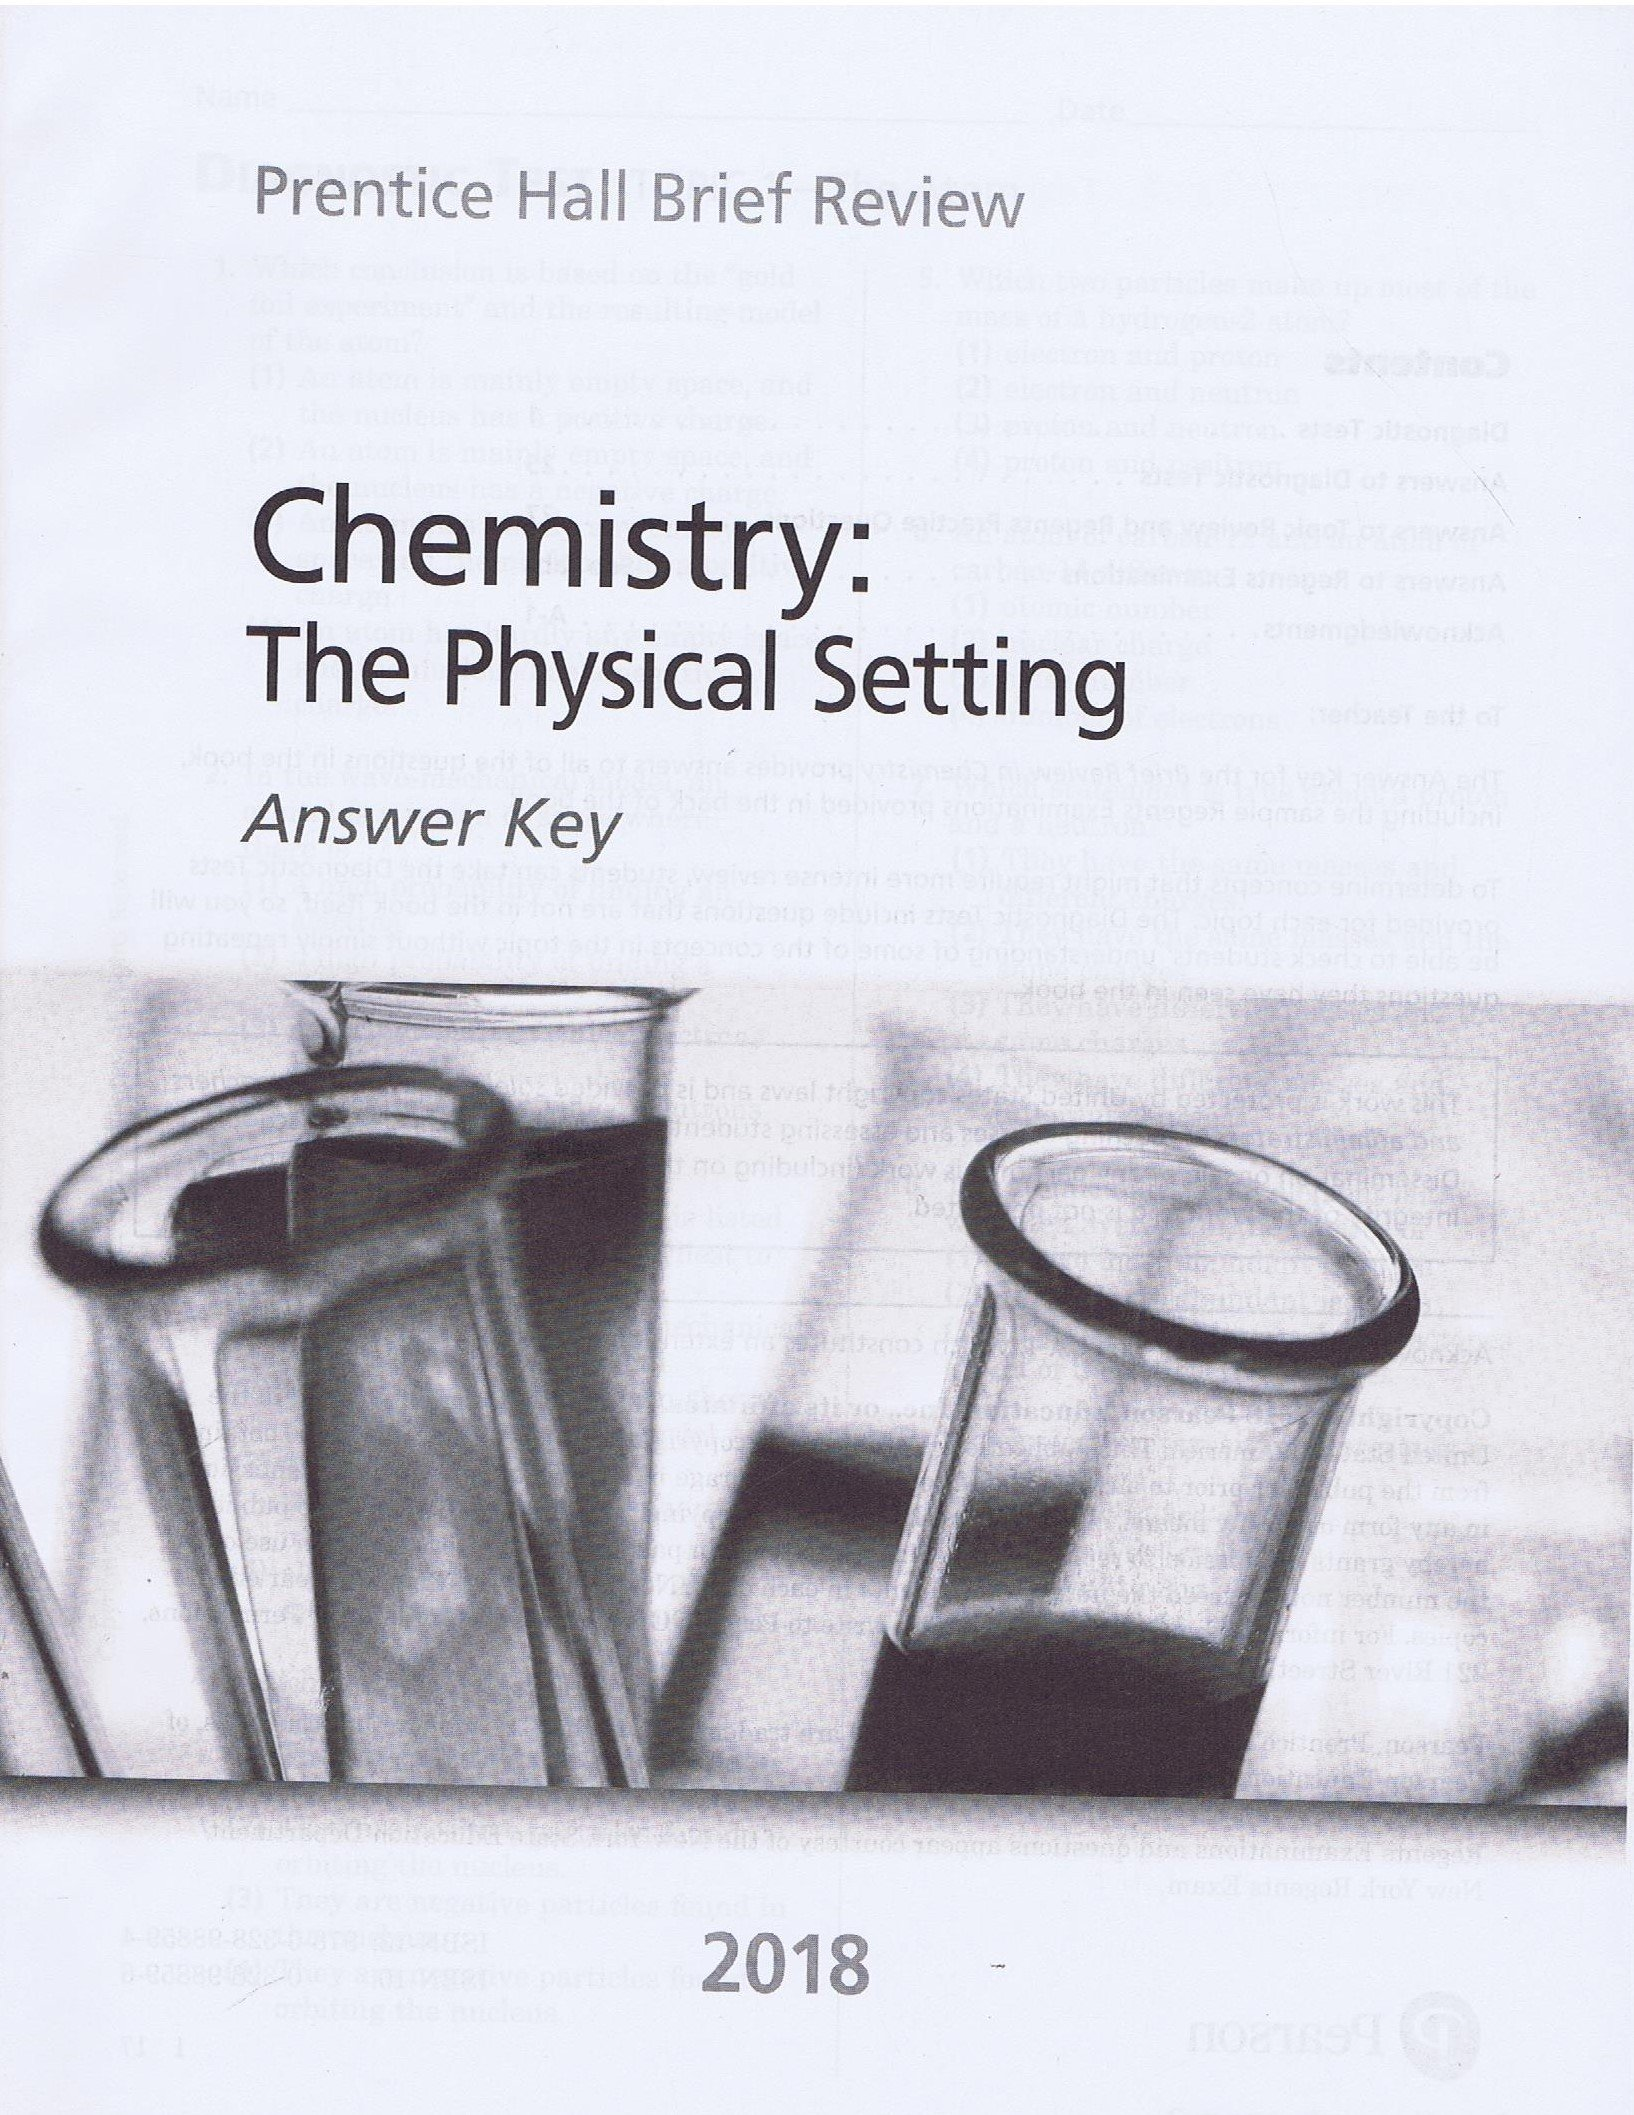 Prentice hall brief review chemistry the physical setting 2018 prentice hall brief review chemistry the physical setting 2018 student book answer key prentice hall 0657687013627 amazon books fandeluxe Choice Image